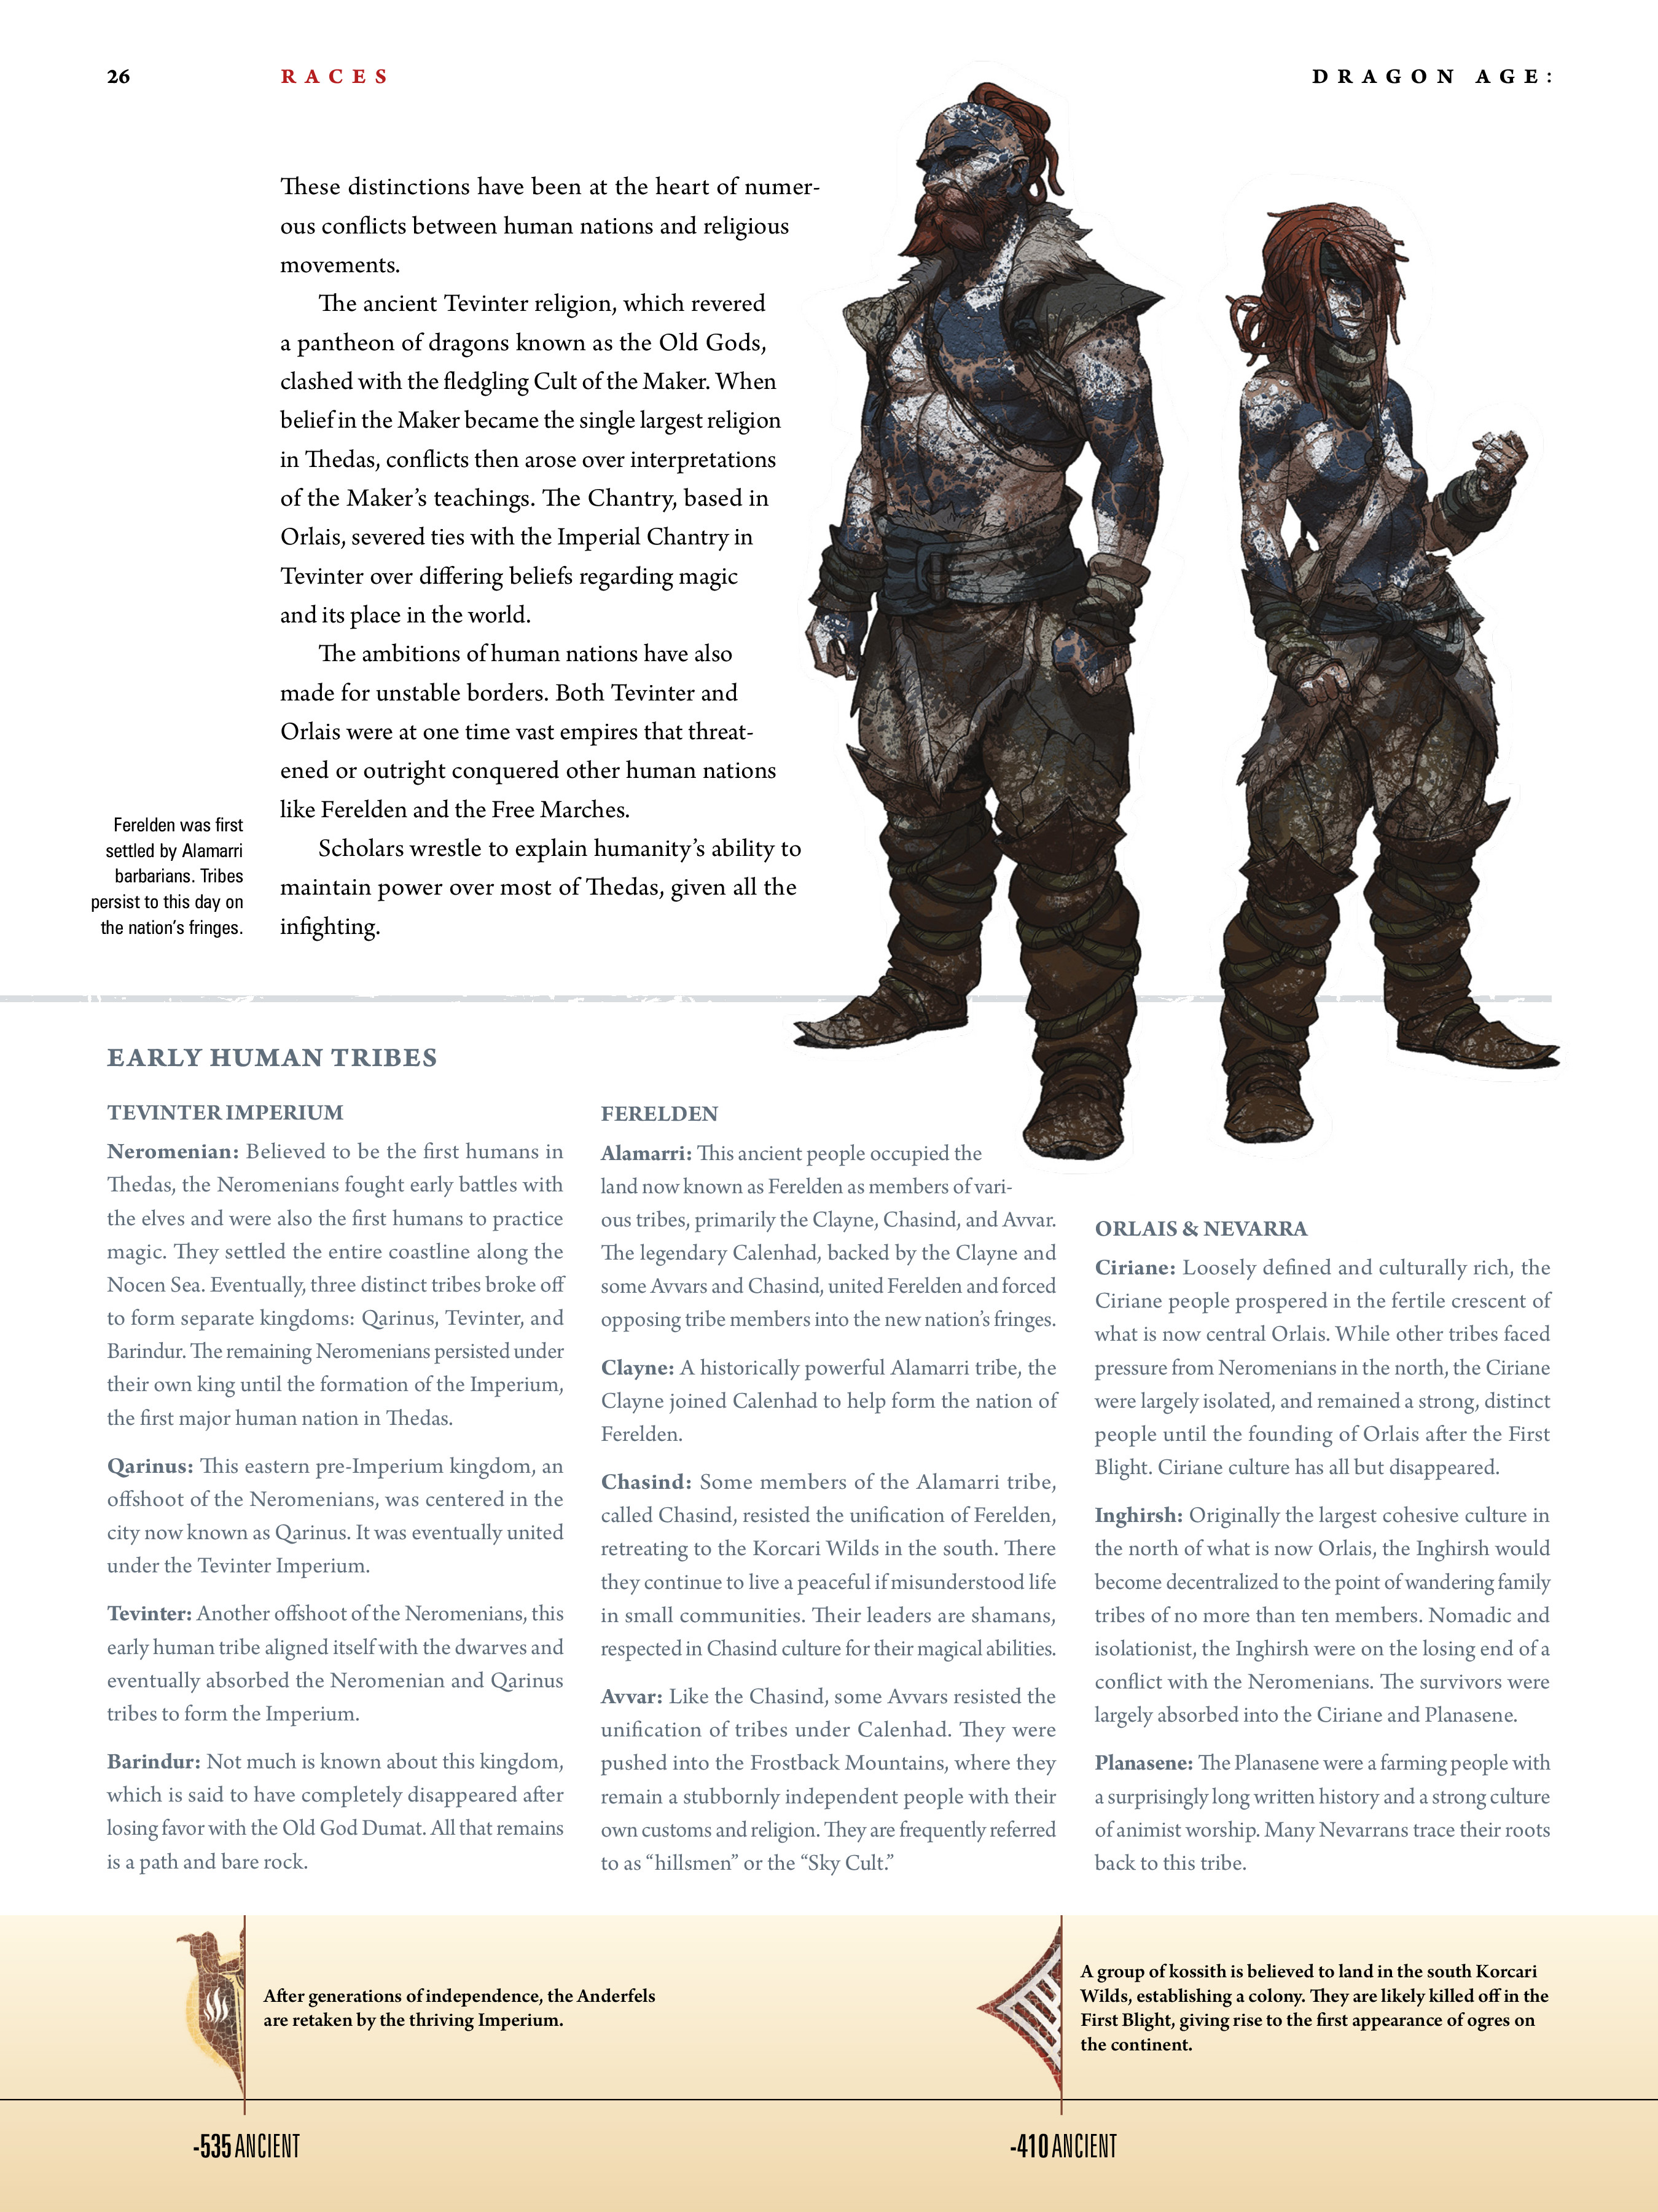 Read online Dragon Age: The World of Thedas comic -  Issue # TPB 1 - 21